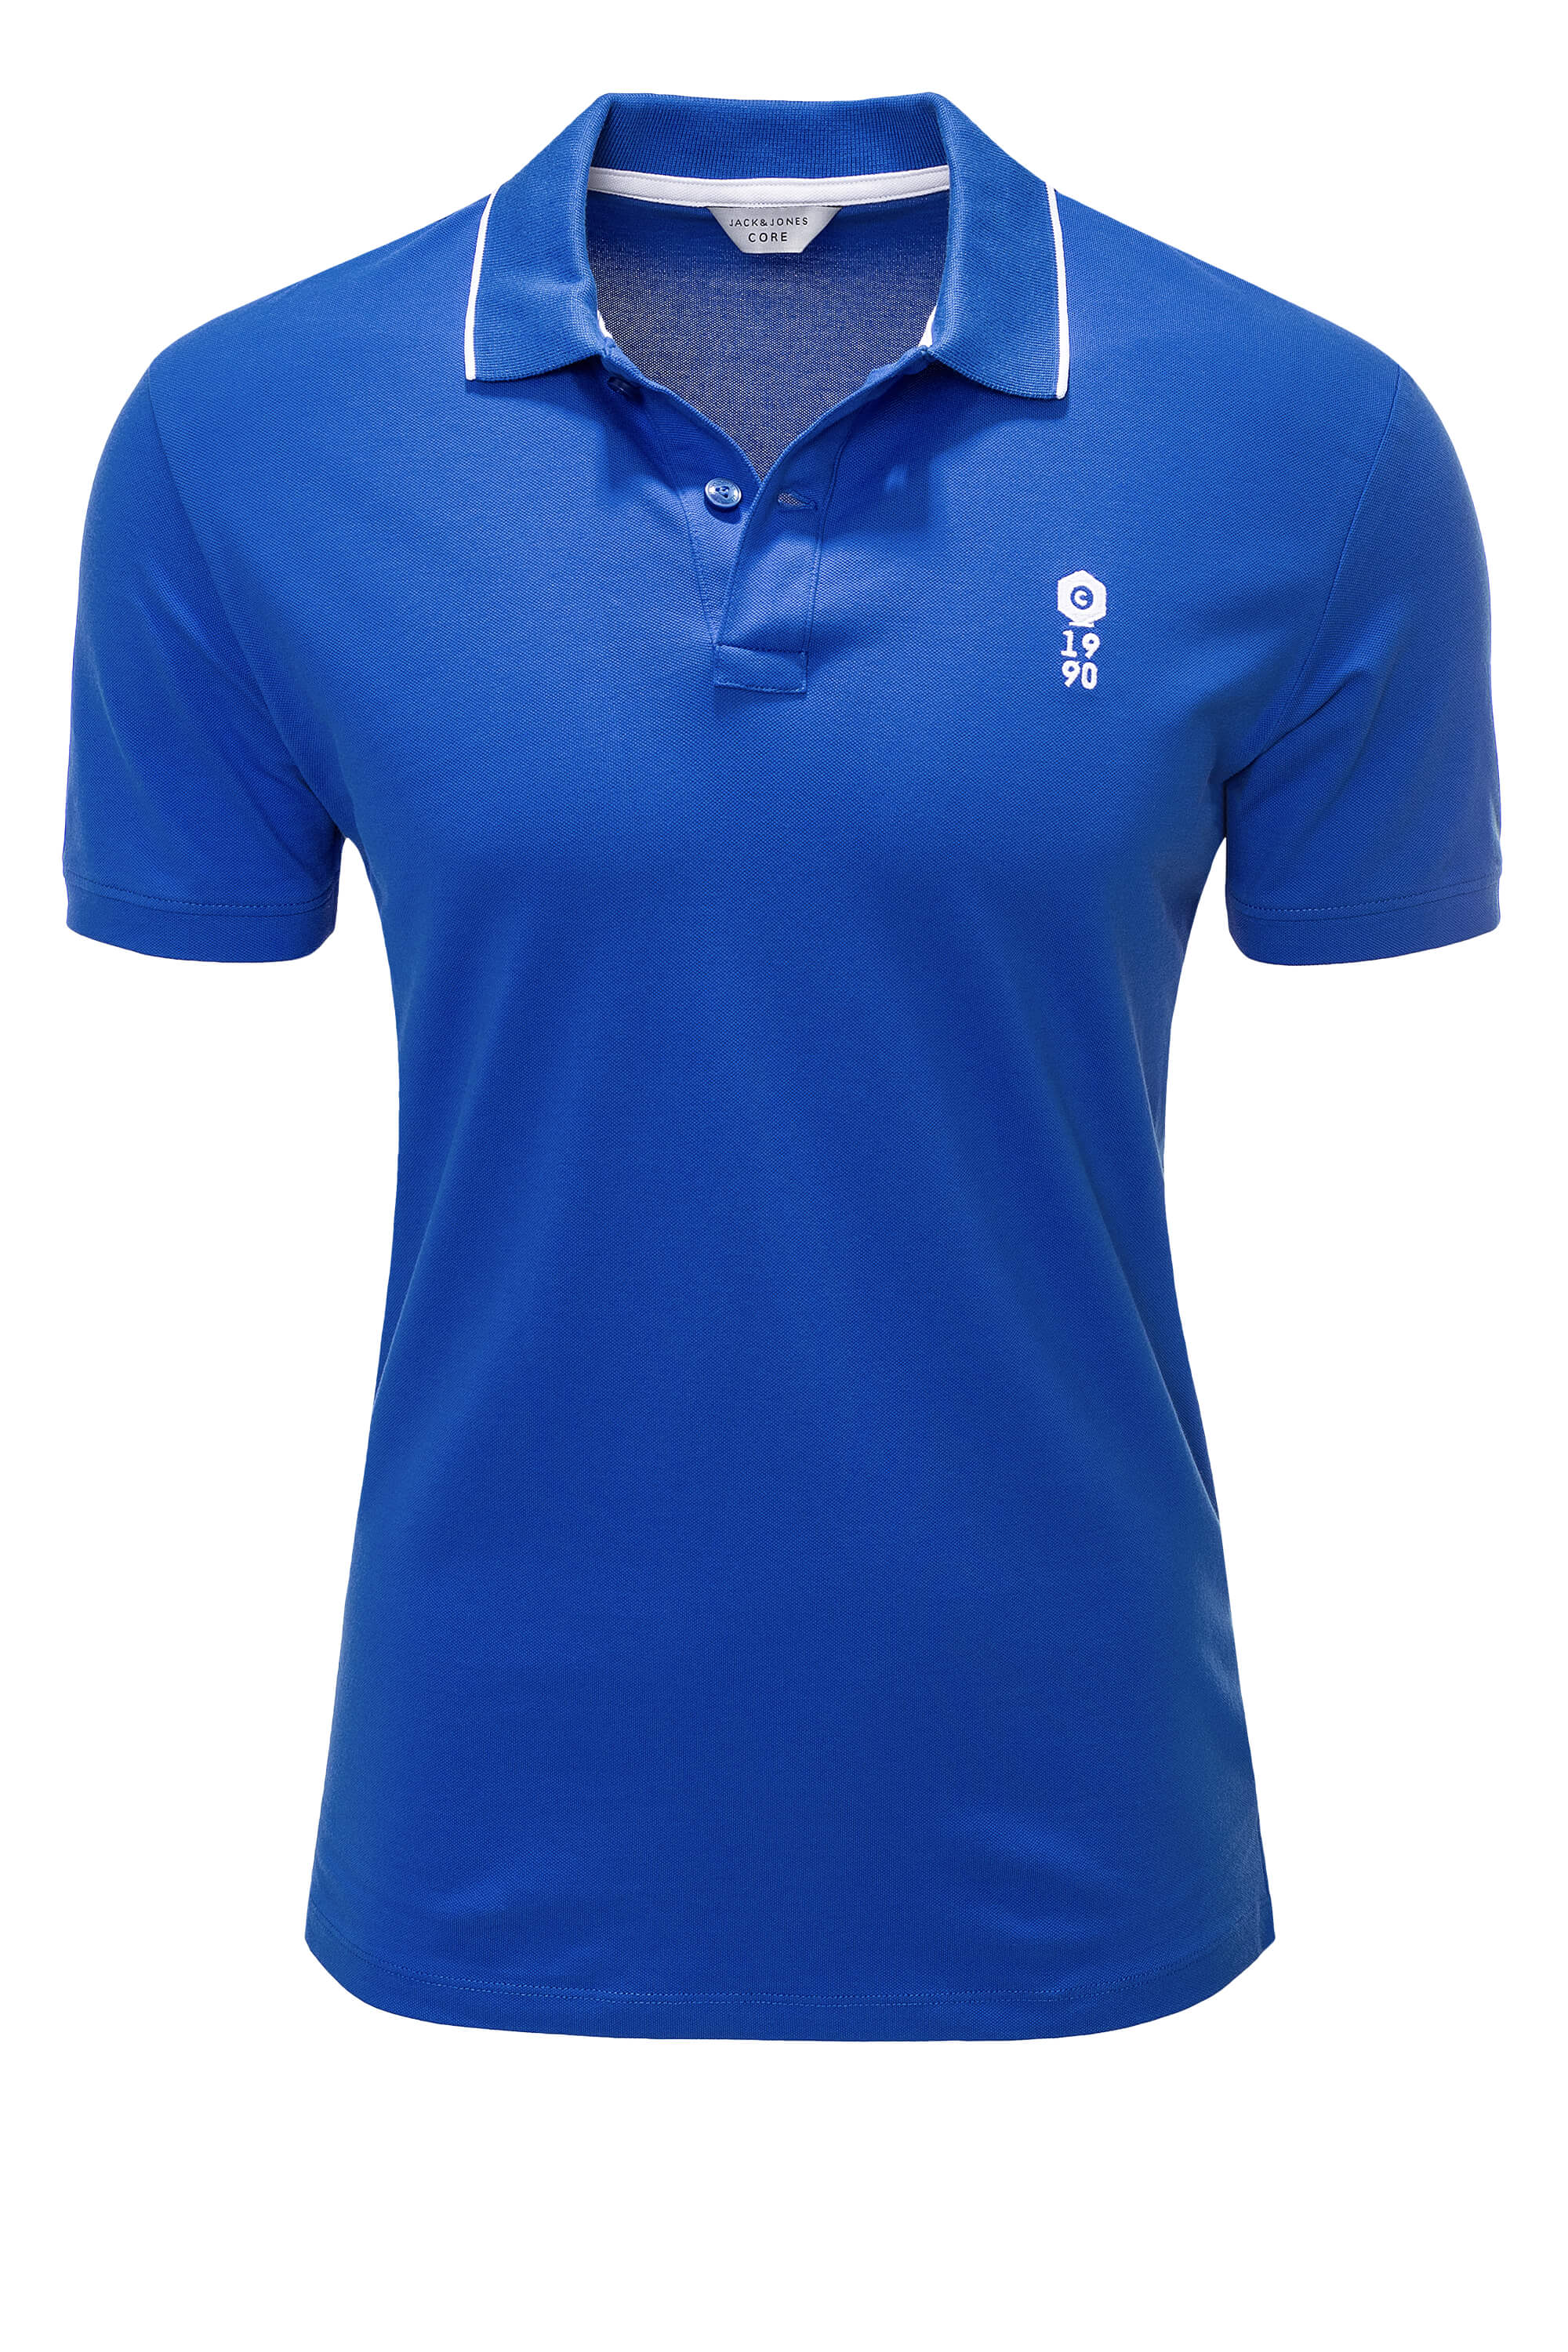 Jack-amp-Jones-senores-camiseta-polo-de-manga-corta-Camisa-Polo-Shirt-t-shirt-Business-color-nuevo miniatura 30